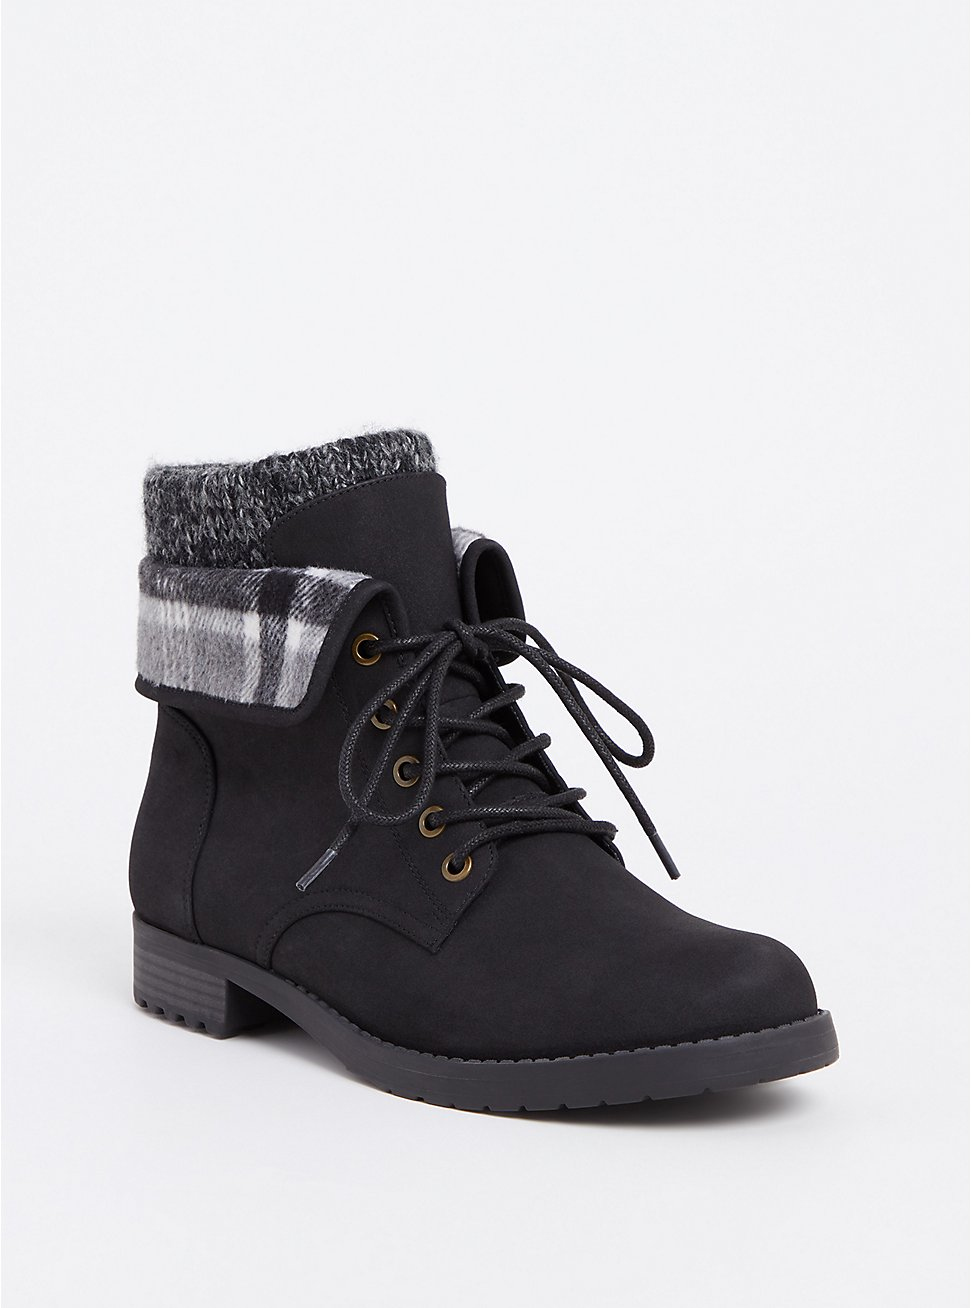 Black Faux Suede Foldover Sweater Combat Boot (WW), BLACK, hi-res